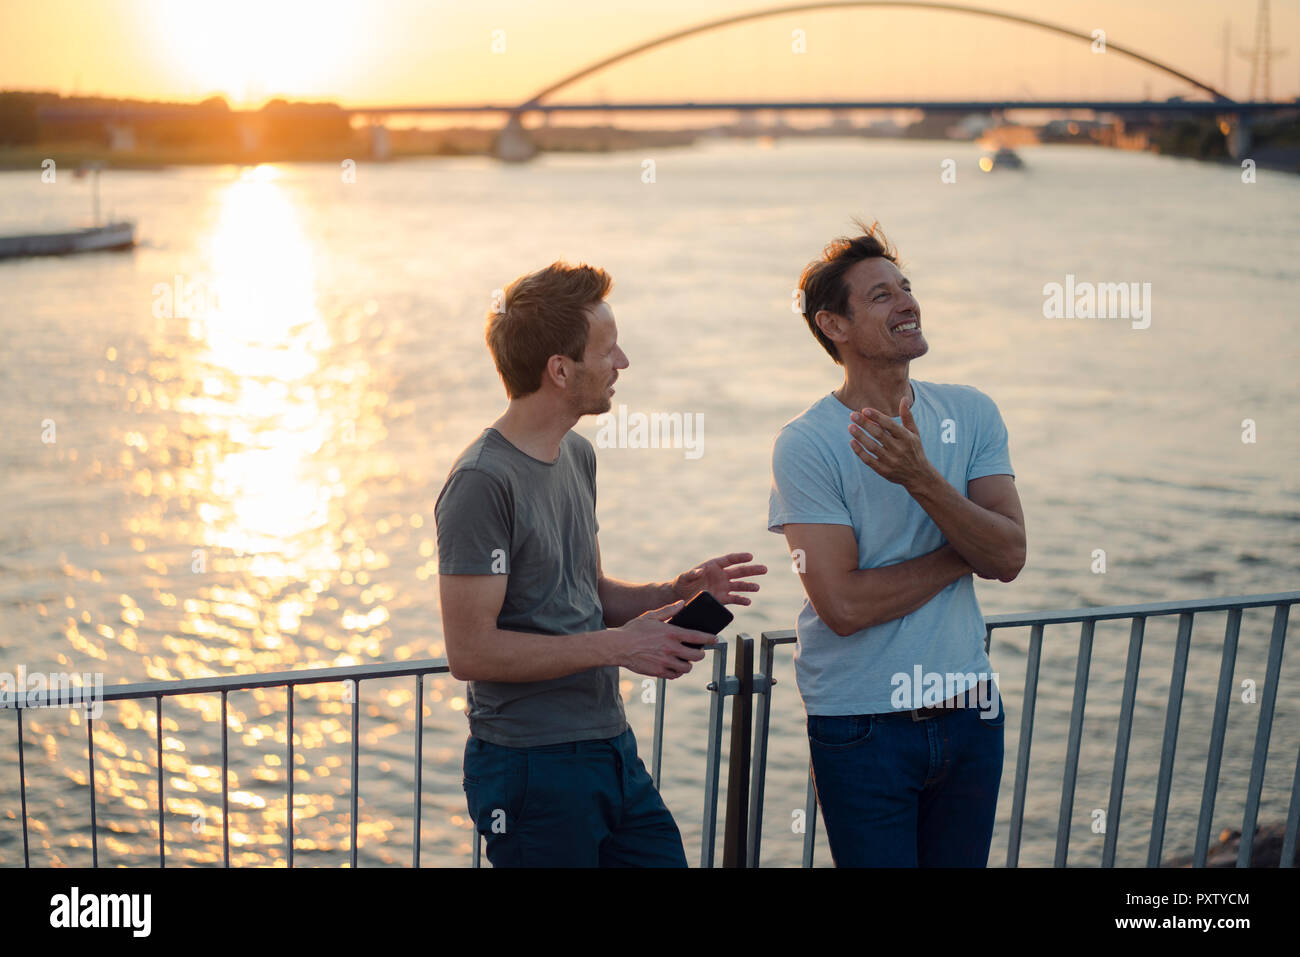 Two friends meeting at sunset, spending the evening talking - Stock Image